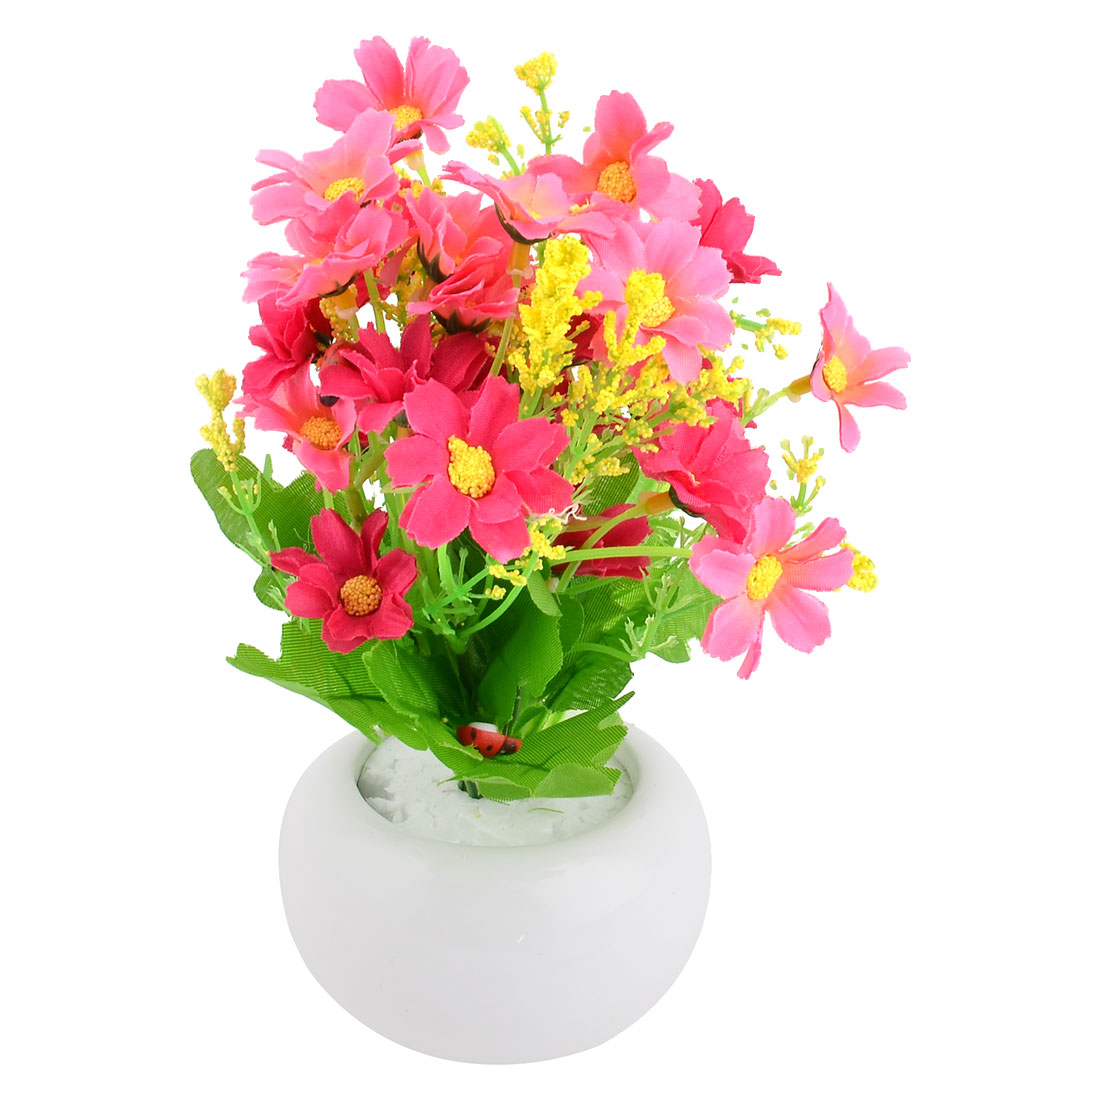 Family Office Ceramic Flowerpot Desk Ornament Artificial Emulational Flower Fuchsia Pink